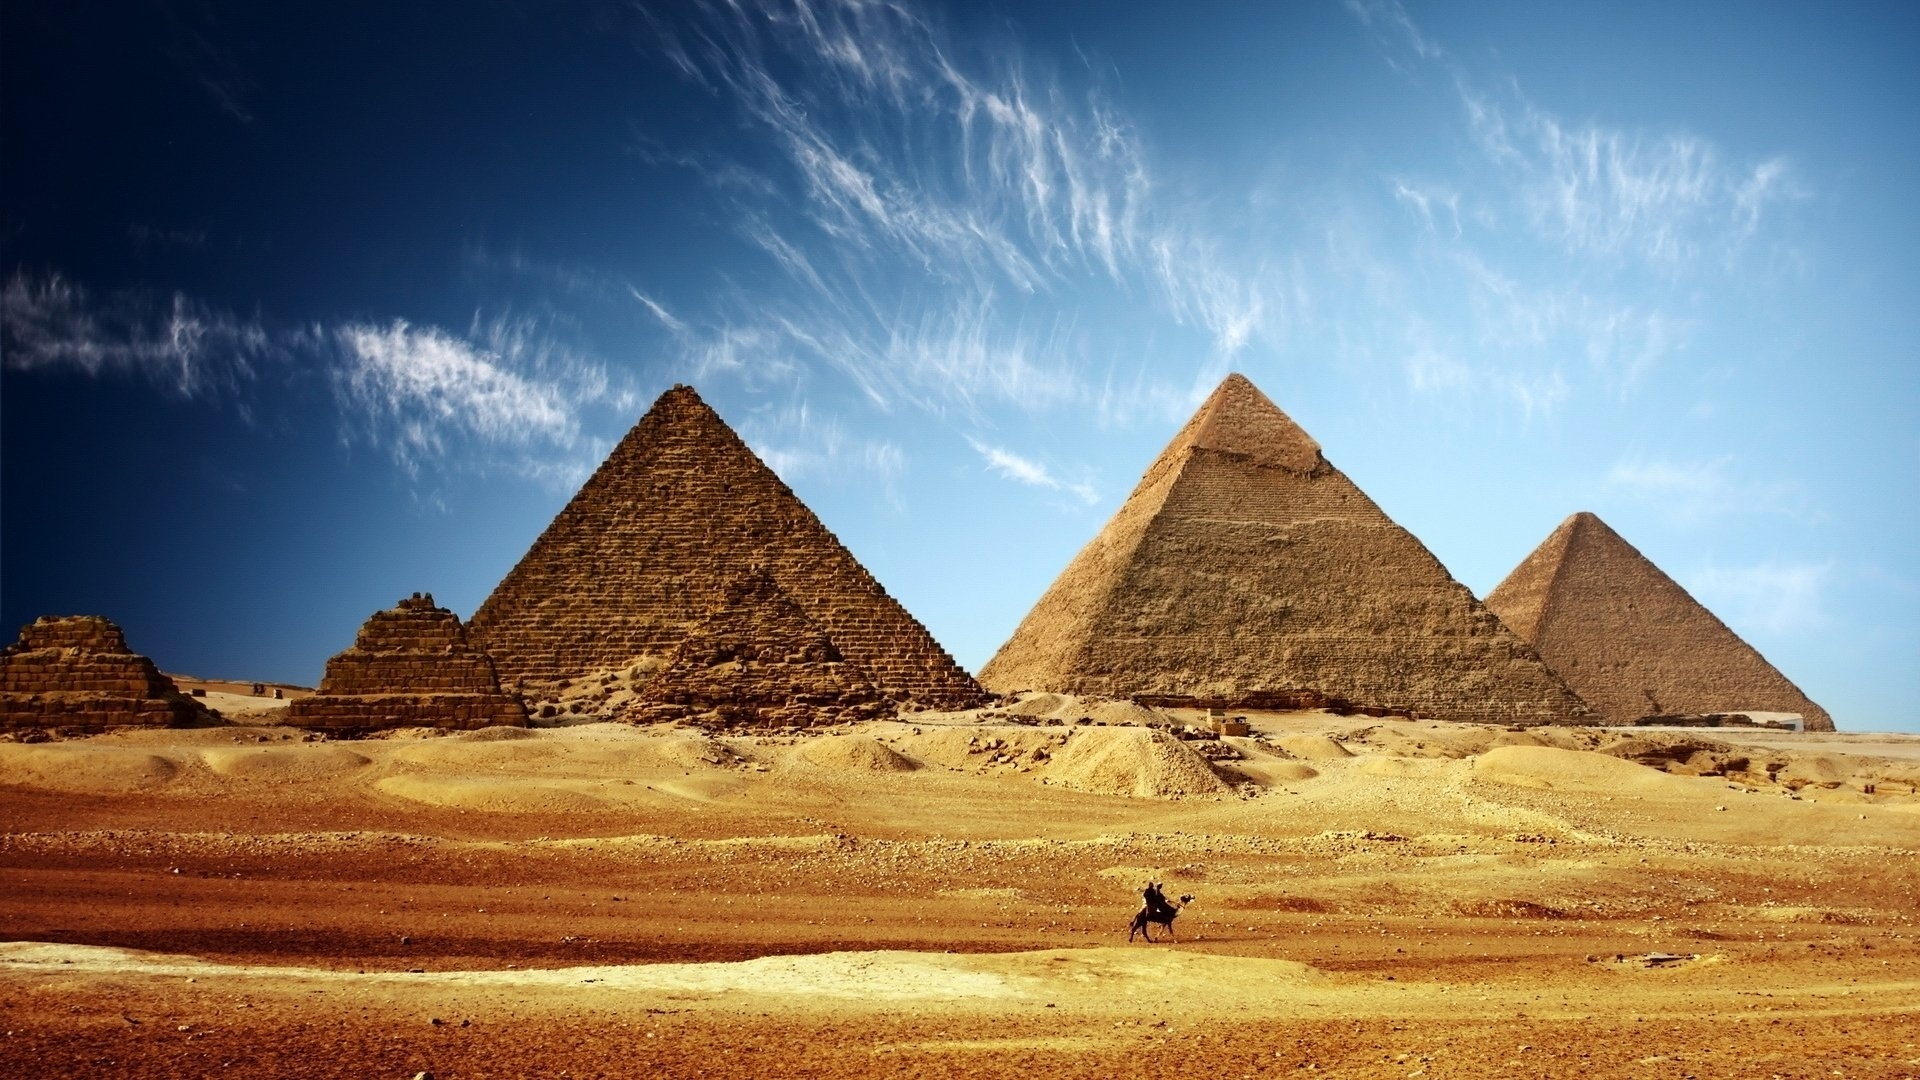 34 pyramid hd wallpapers | background images - wallpaper abyss